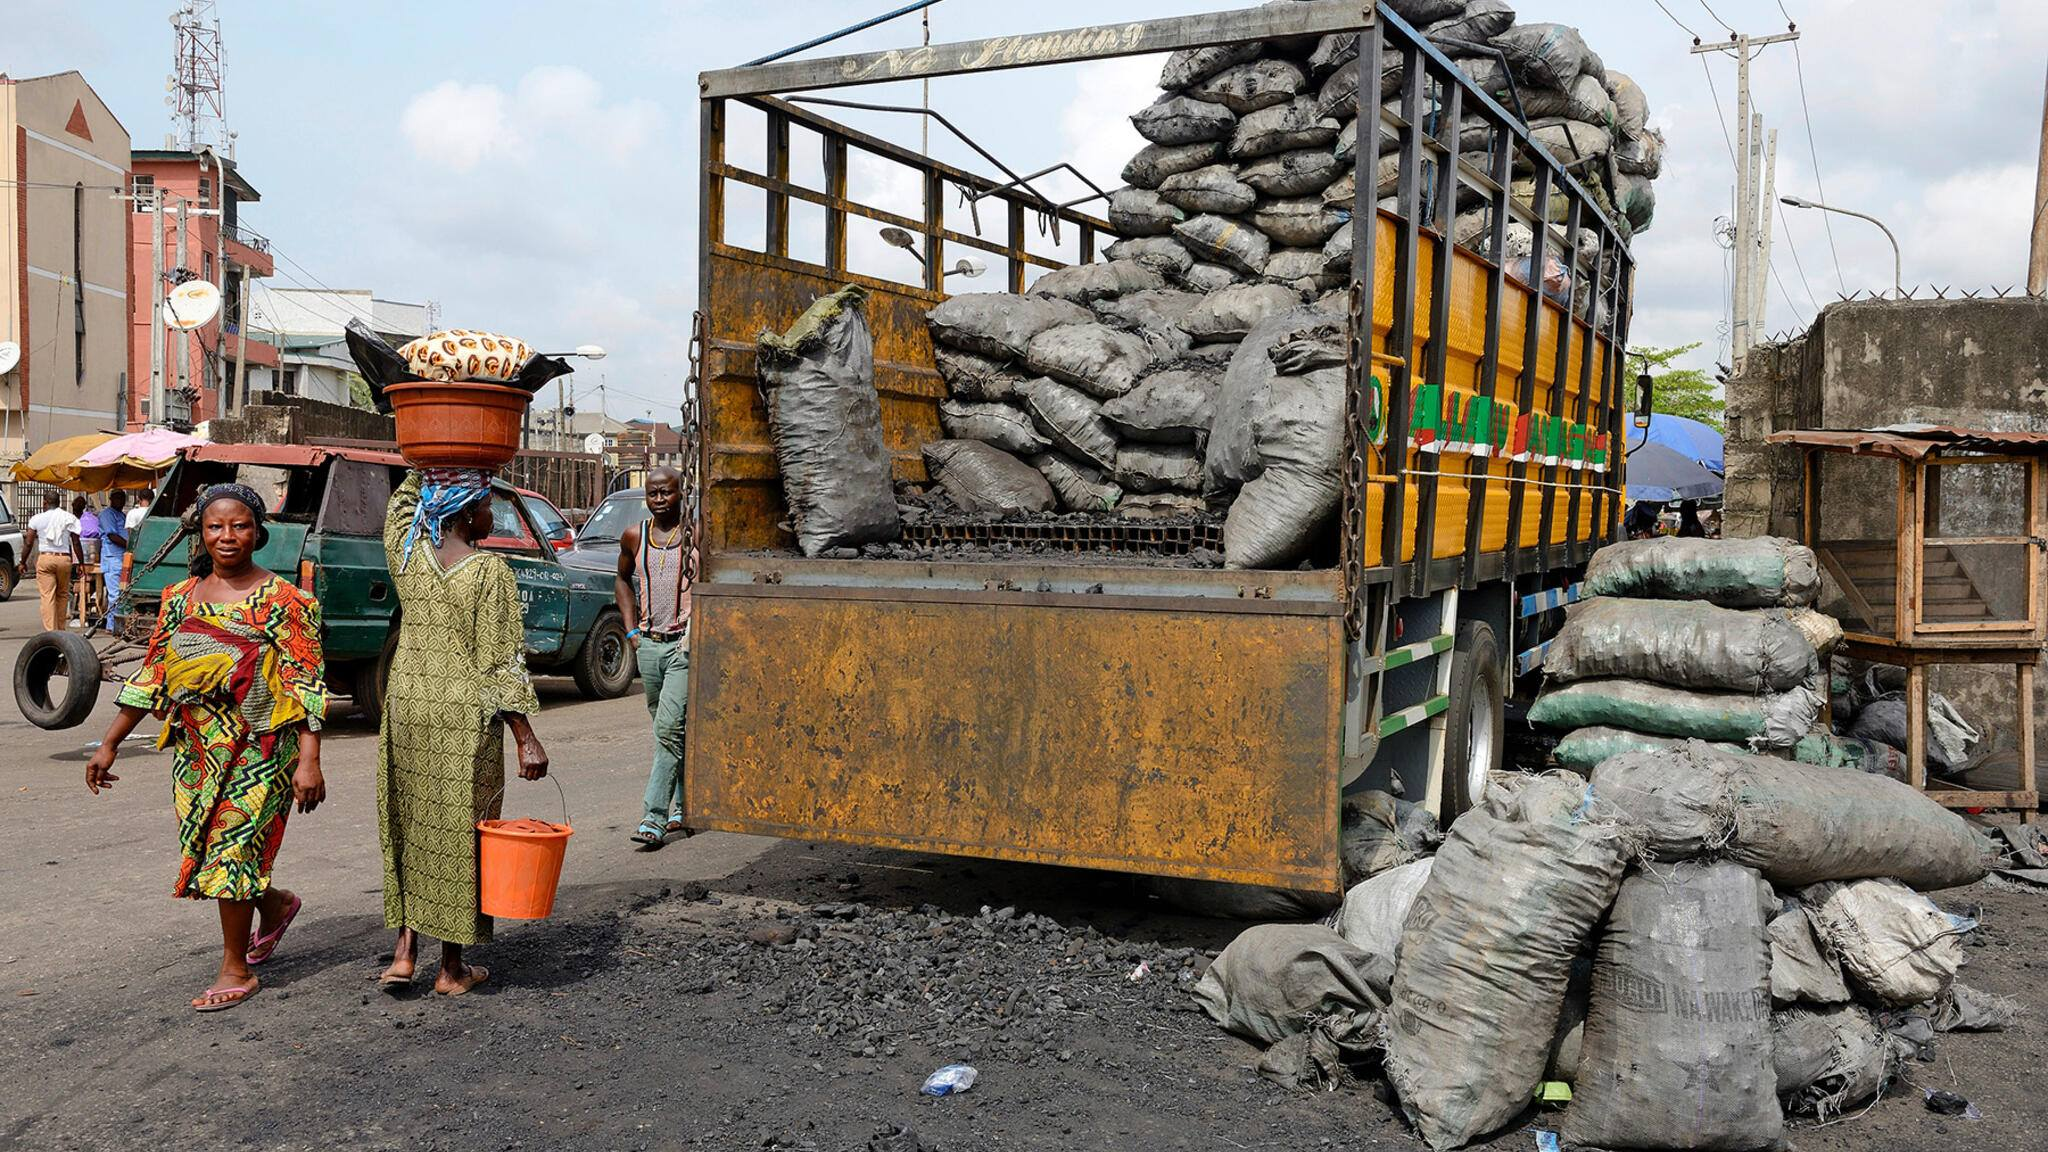 LAGOS, NIGERIA - MARCH 10 : Wood charcoal in a slum in area Sura in Lagos Island on March 10, 2016 in Lagos, Nigeria - West Africa. (Photo by Frédéric Soltan/Getty Images)